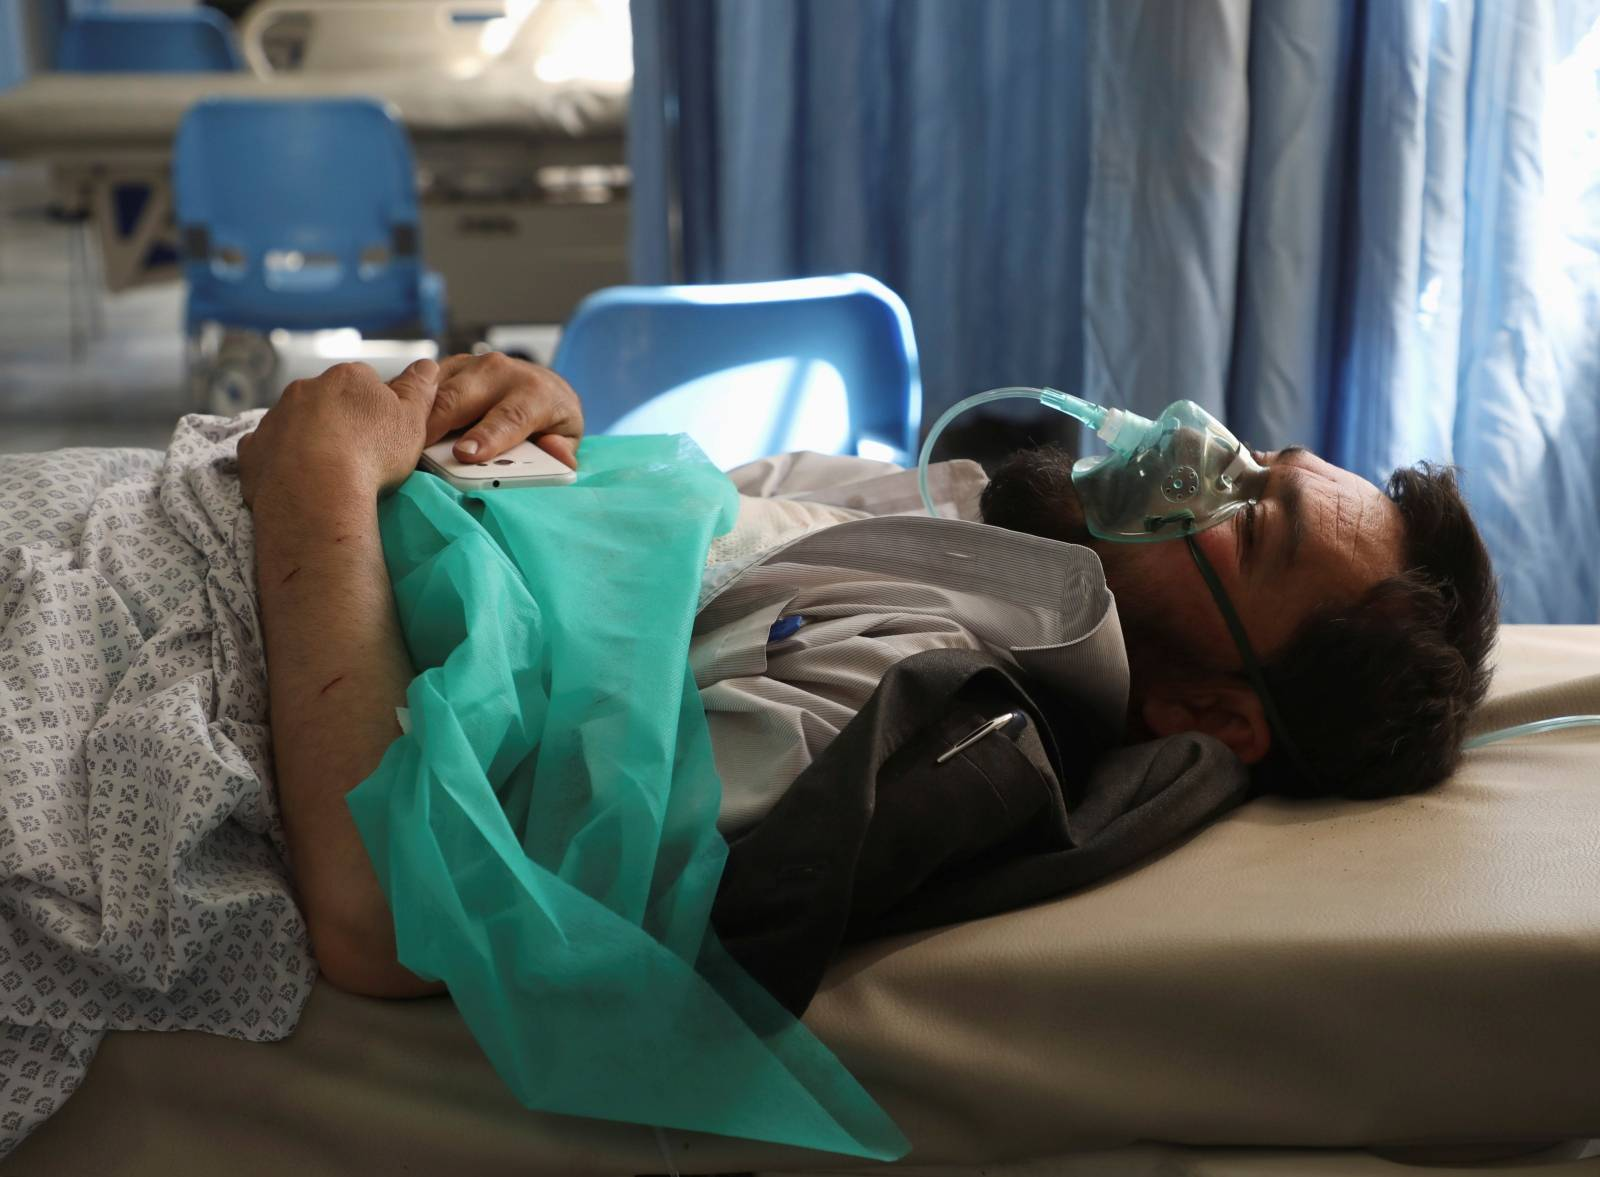 A wounded man receives treatment at a hospital after a blast in Kabul, Afghanistan